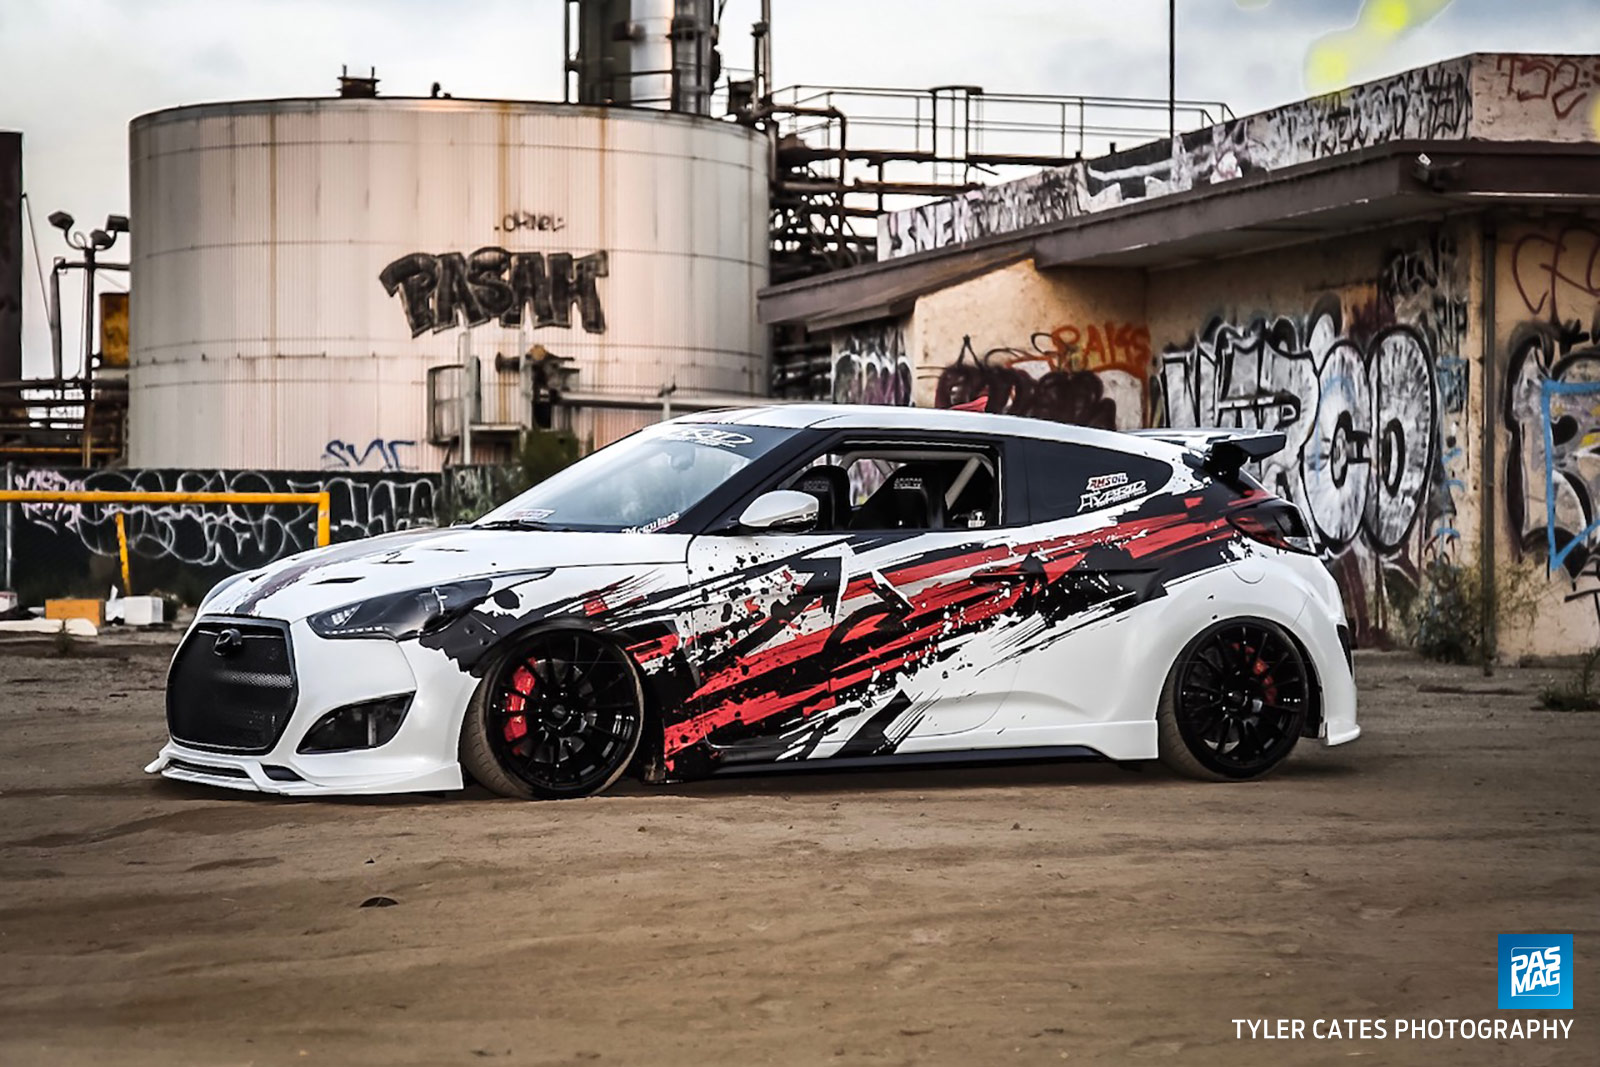 05 Greg Bauchat SoCal Garage Works 2013 Hyundai Veloster Turbo PASMAG